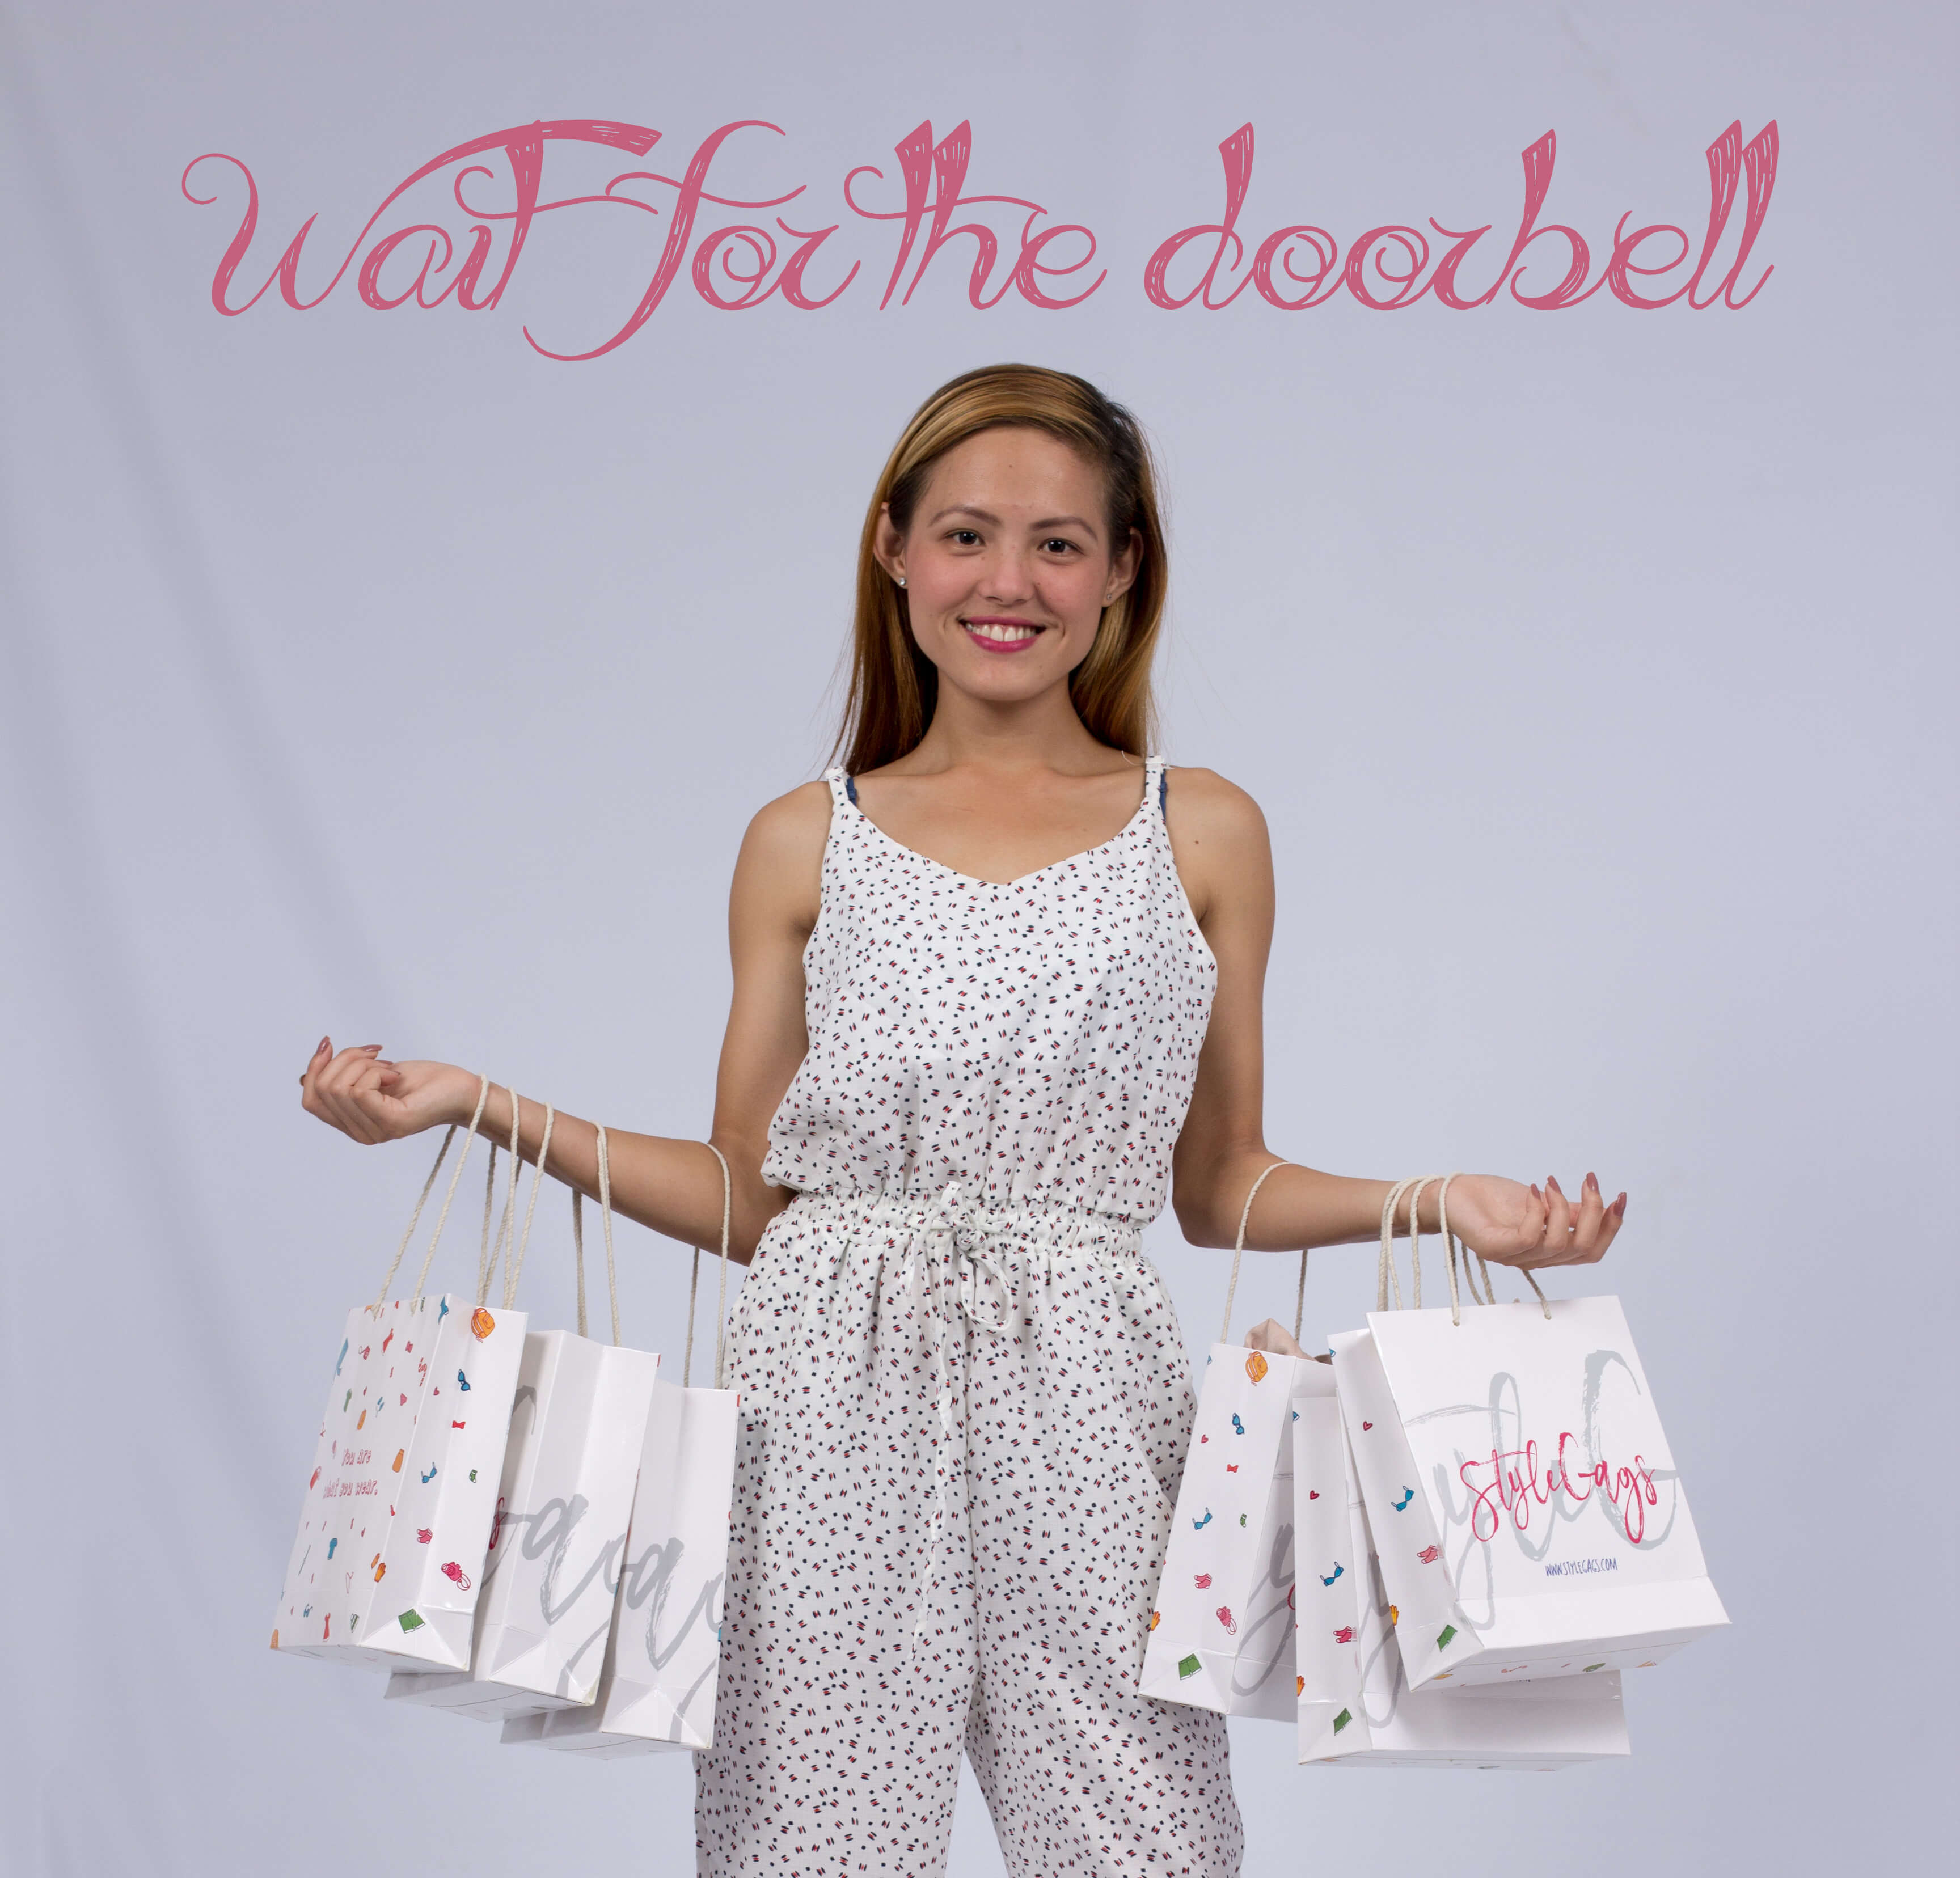 e1825e4910c All you need to do is wear your pajamas and wait for the doorbell. You  don t need to come out of the house. They will come to you at your  doorsteps. ...